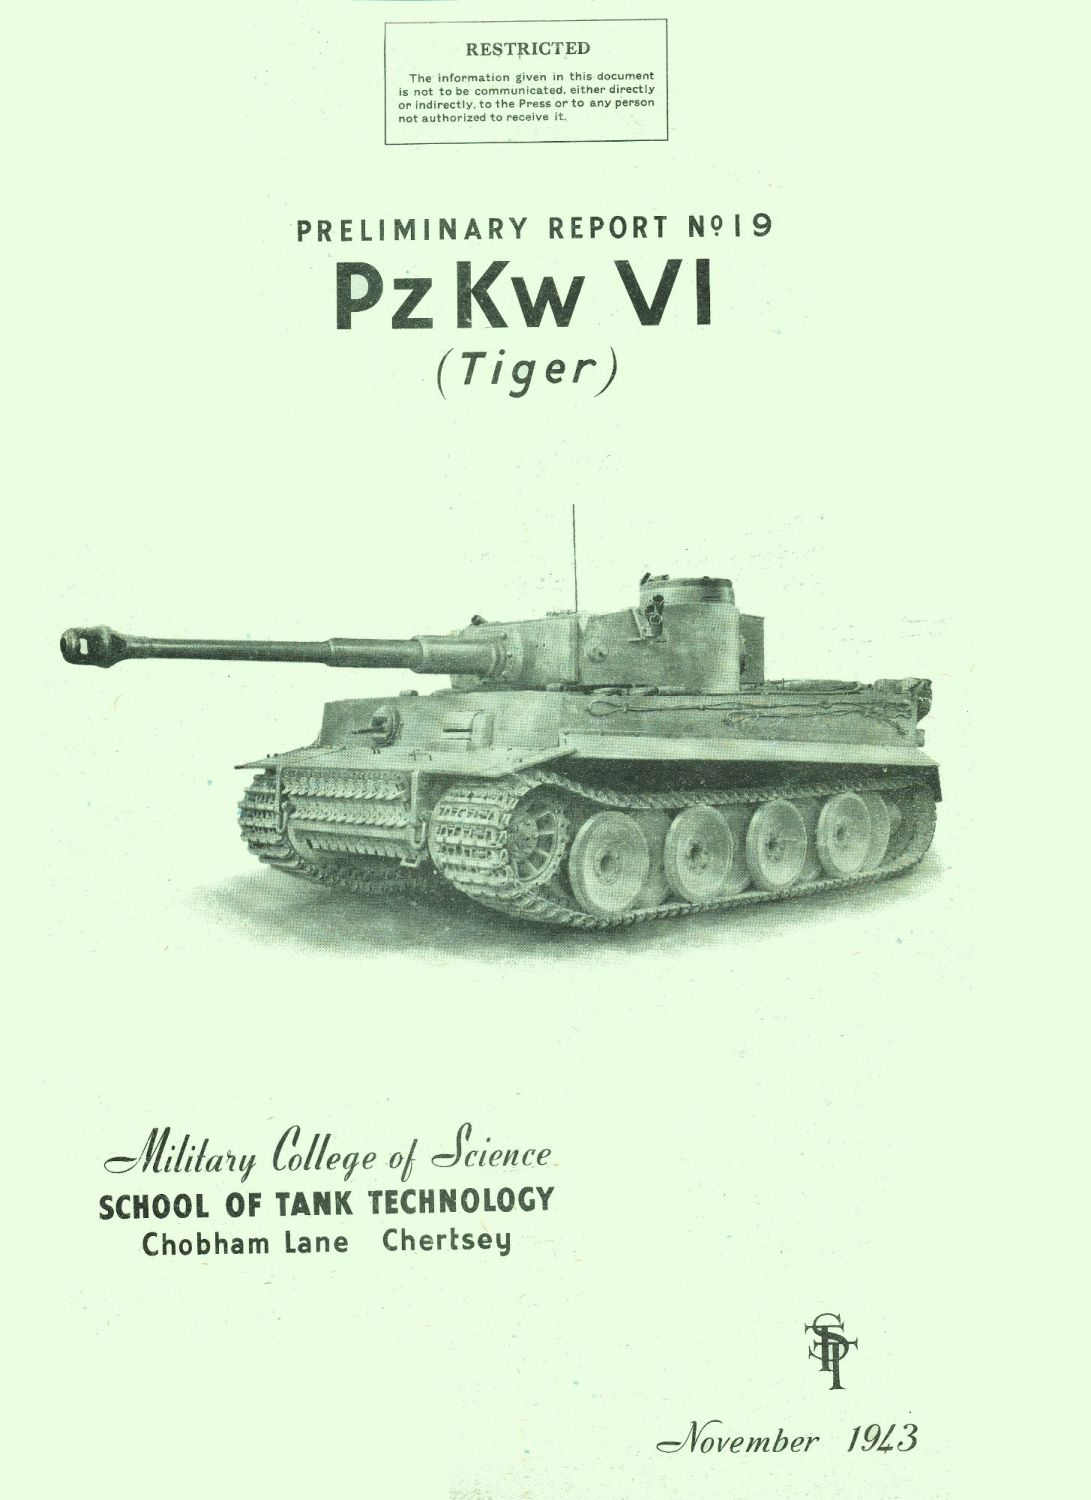 Panzer VI Tiger STT Reports 19 and Supplement